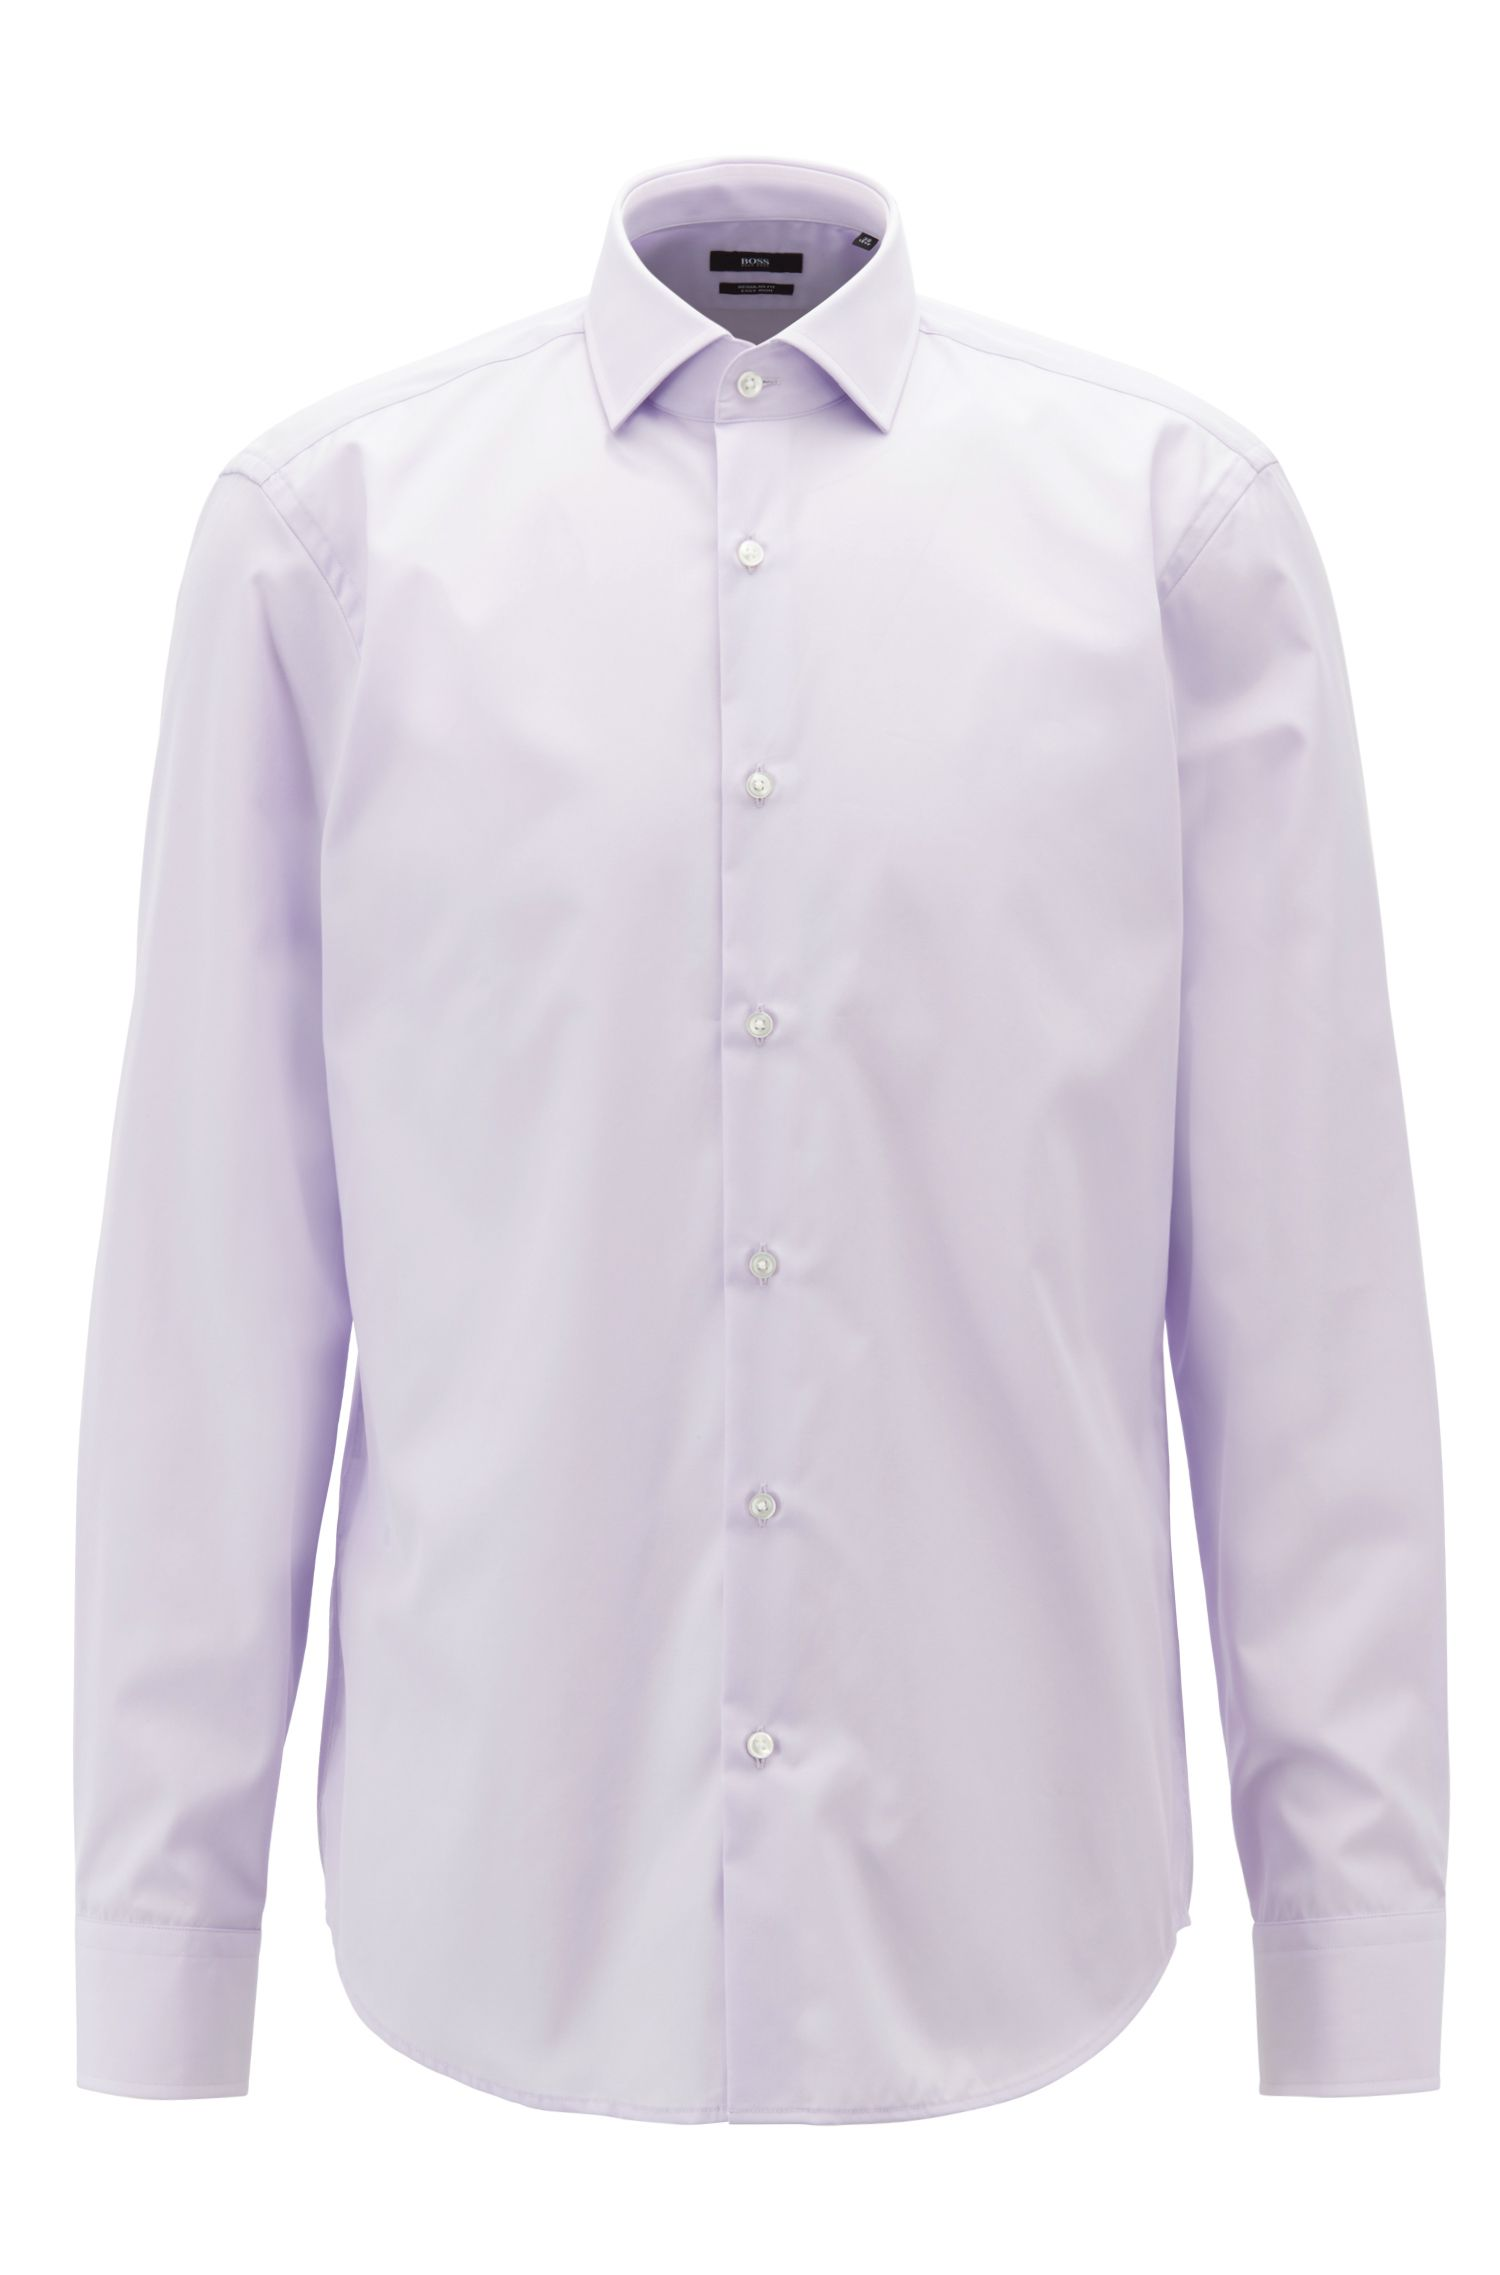 Easy-iron cotton shirt in a regular fit